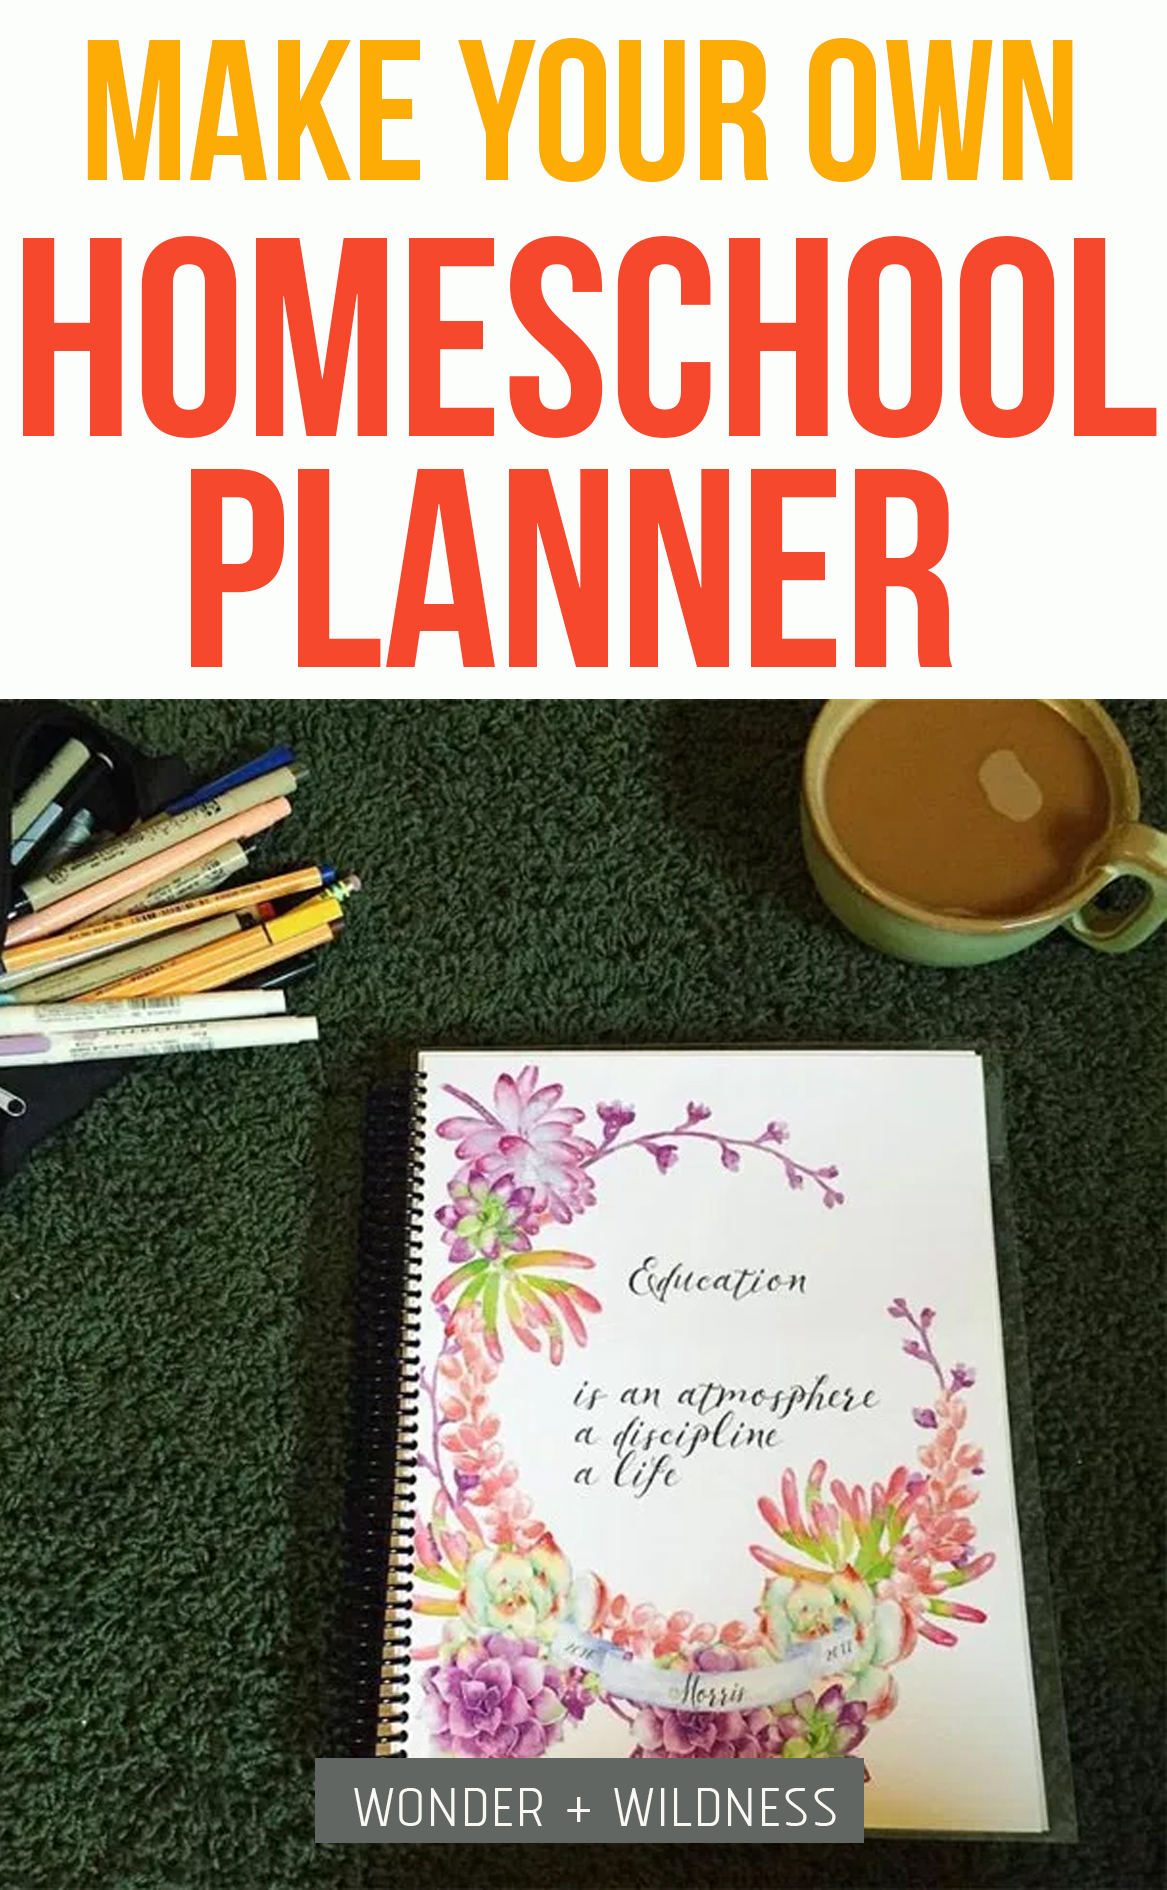 Once You Have The Homeschool Planner Pages You Want For Your Book (be Sure  To Remember To Print Double Sided!) You Can Take Them In To Your Local  Office ...